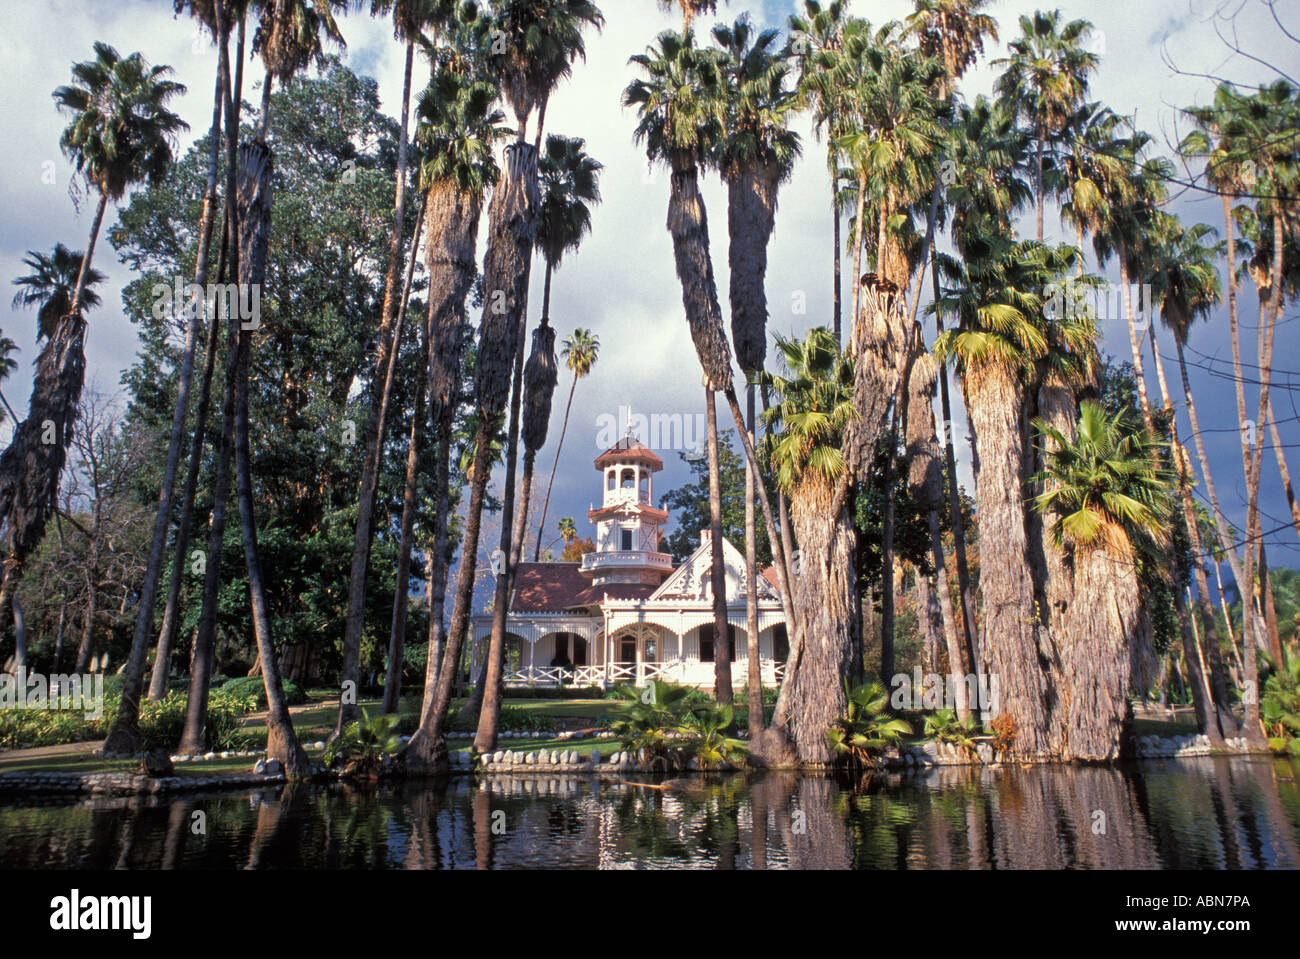 Queen Anne Cottage Los Angeles Arboretum Arcadia California United States  Of America   Stock Image